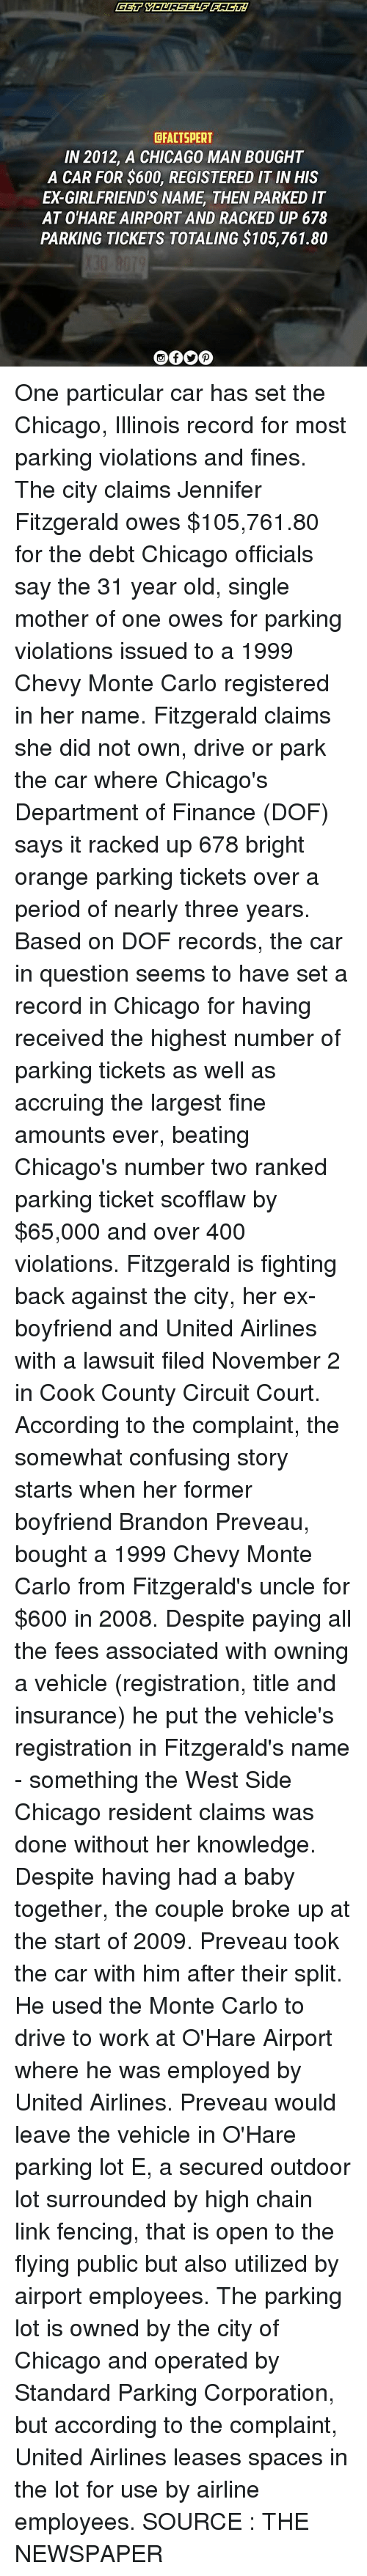 West Side: CFACTSPERT  IN 2012, A CHICAGO MAN BOUGHT  A CAR FOR $600, REGISTERED IT INHIS  ED GIRLFRIEND'S NAME THEN PARKED IT  AT O'HARE AIRPORT AND RACKED UP 678  PARKING TICKETS TOTALING $105,761.80 One particular car has set the Chicago, Illinois record for most parking violations and fines. The city claims Jennifer Fitzgerald owes $105,761.80 for the debt Chicago officials say the 31 year old, single mother of one owes for parking violations issued to a 1999 Chevy Monte Carlo registered in her name. Fitzgerald claims she did not own, drive or park the car where Chicago's Department of Finance (DOF) says it racked up 678 bright orange parking tickets over a period of nearly three years. Based on DOF records, the car in question seems to have set a record in Chicago for having received the highest number of parking tickets as well as accruing the largest fine amounts ever, beating Chicago's number two ranked parking ticket scofflaw by $65,000 and over 400 violations. Fitzgerald is fighting back against the city, her ex-boyfriend and United Airlines with a lawsuit filed November 2 in Cook County Circuit Court. According to the complaint, the somewhat confusing story starts when her former boyfriend Brandon Preveau, bought a 1999 Chevy Monte Carlo from Fitzgerald's uncle for $600 in 2008. Despite paying all the fees associated with owning a vehicle (registration, title and insurance) he put the vehicle's registration in Fitzgerald's name - something the West Side Chicago resident claims was done without her knowledge. Despite having had a baby together, the couple broke up at the start of 2009. Preveau took the car with him after their split. He used the Monte Carlo to drive to work at O'Hare Airport where he was employed by United Airlines. Preveau would leave the vehicle in O'Hare parking lot E, a secured outdoor lot surrounded by high chain link fencing, that is open to the flying public but also utilized by airport employees. The parking lot is owned by the city of Chicago and operated by Standard Parking Corporation, but according to the complaint, United Airlines leases spaces in the lot for use by airline employees. SOURCE : THE NEWSPAPER